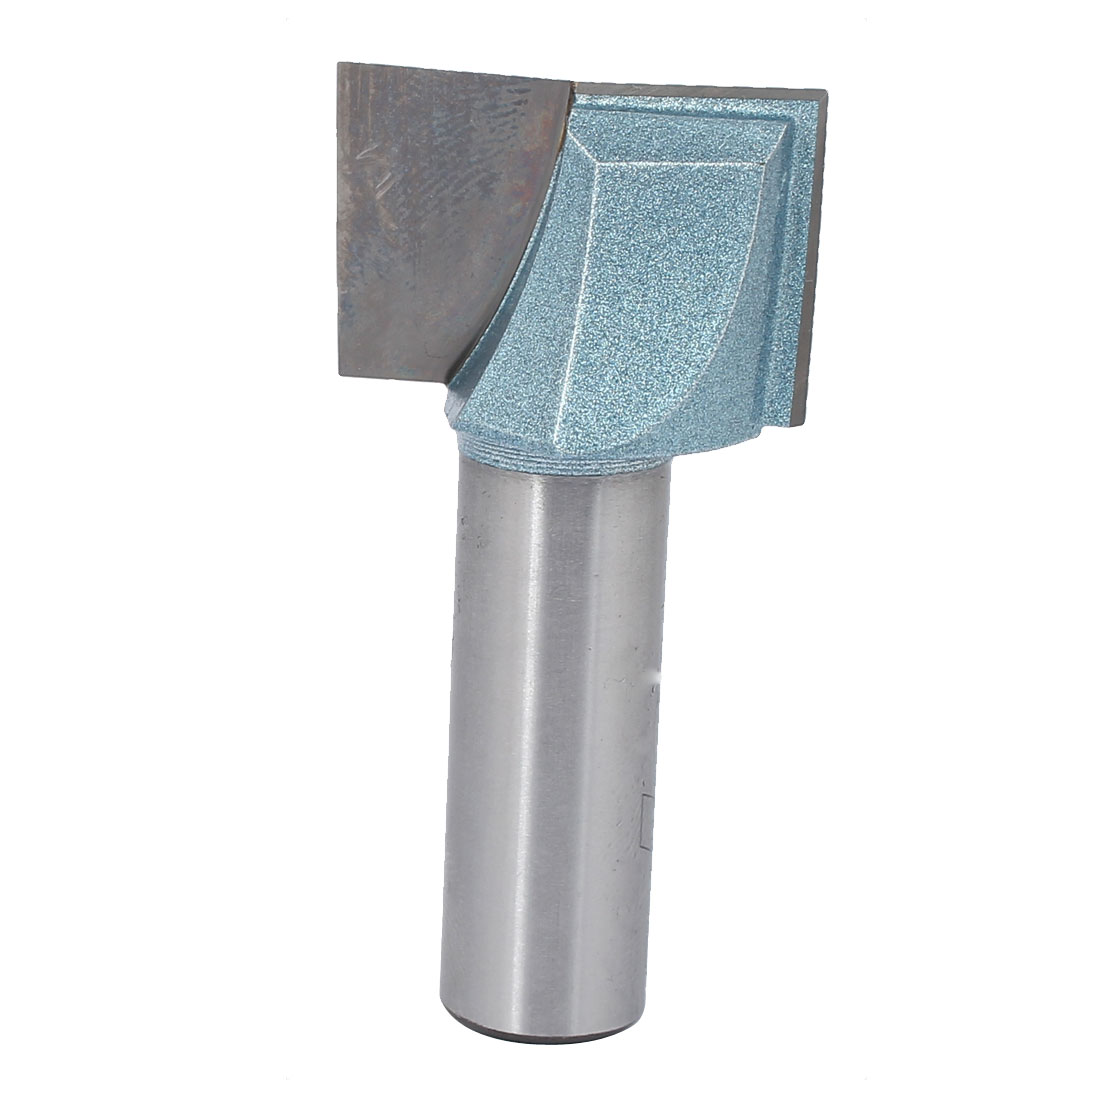 "1/2"" x 1-1/8"" Straight Shank Cleaning Bottom Router Bit Cutter Cutting Tool"